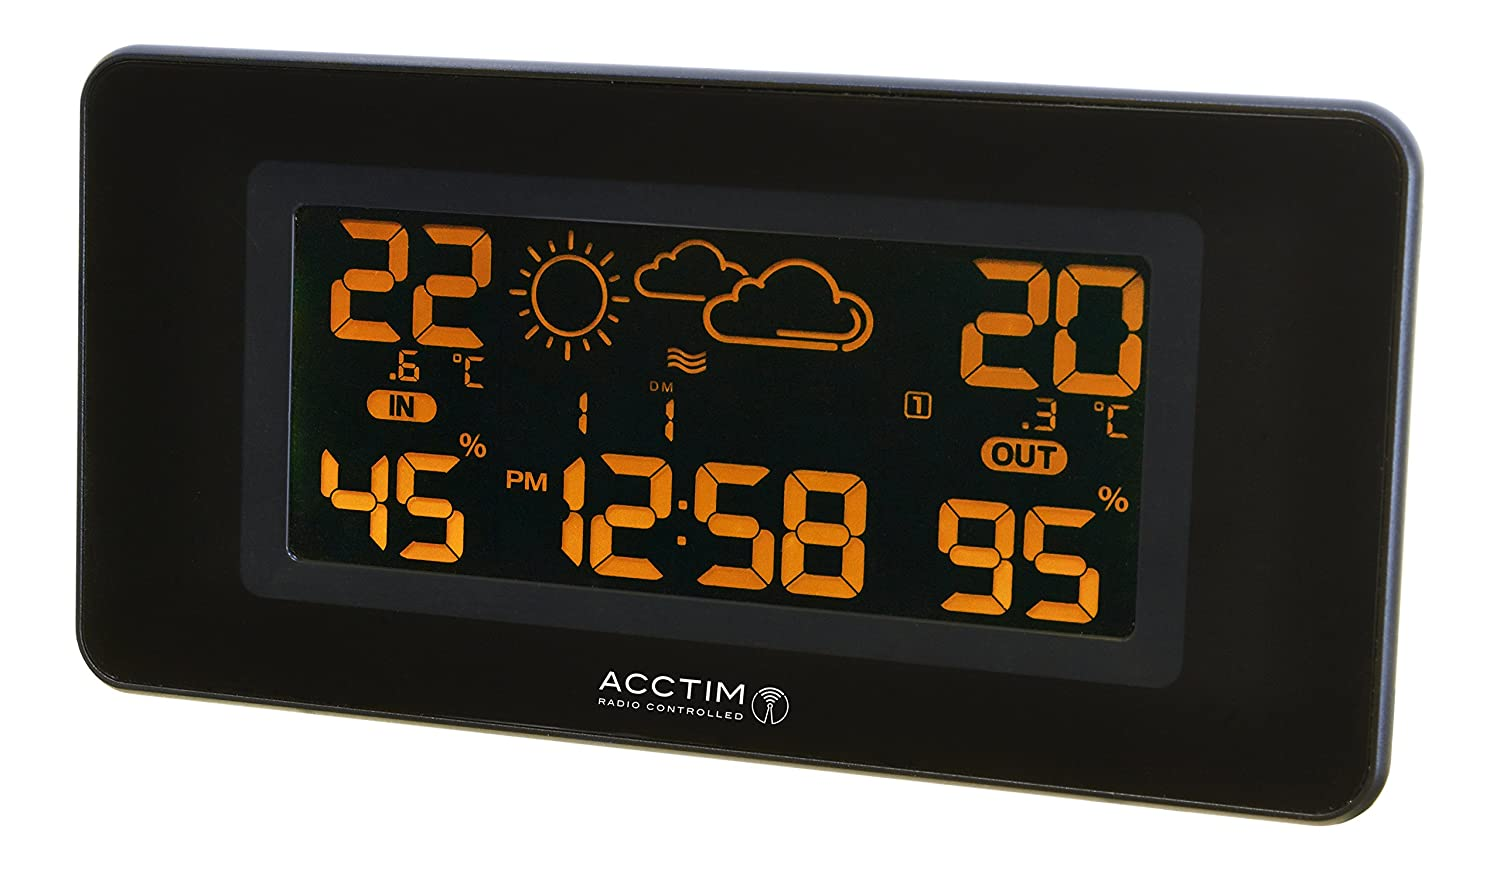 Acctim 71753 Andreas Radio Controlled Weather Station